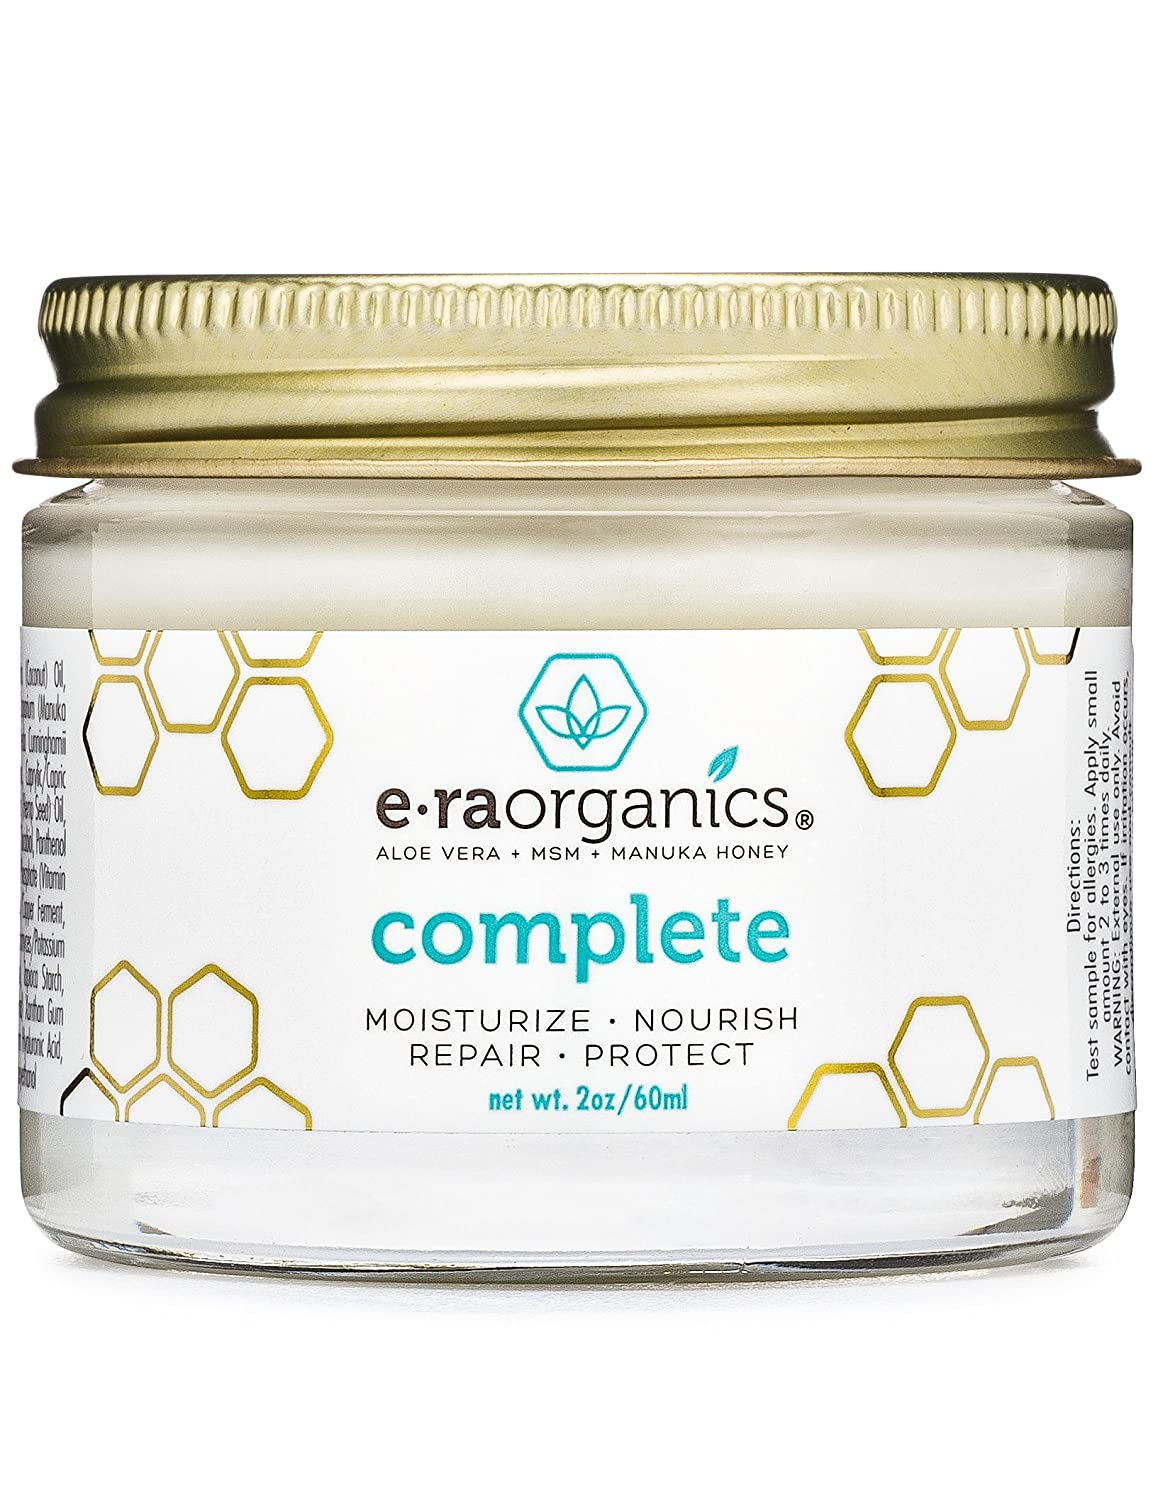 Era Organics Natural & Organic Face Moisturizer Cream